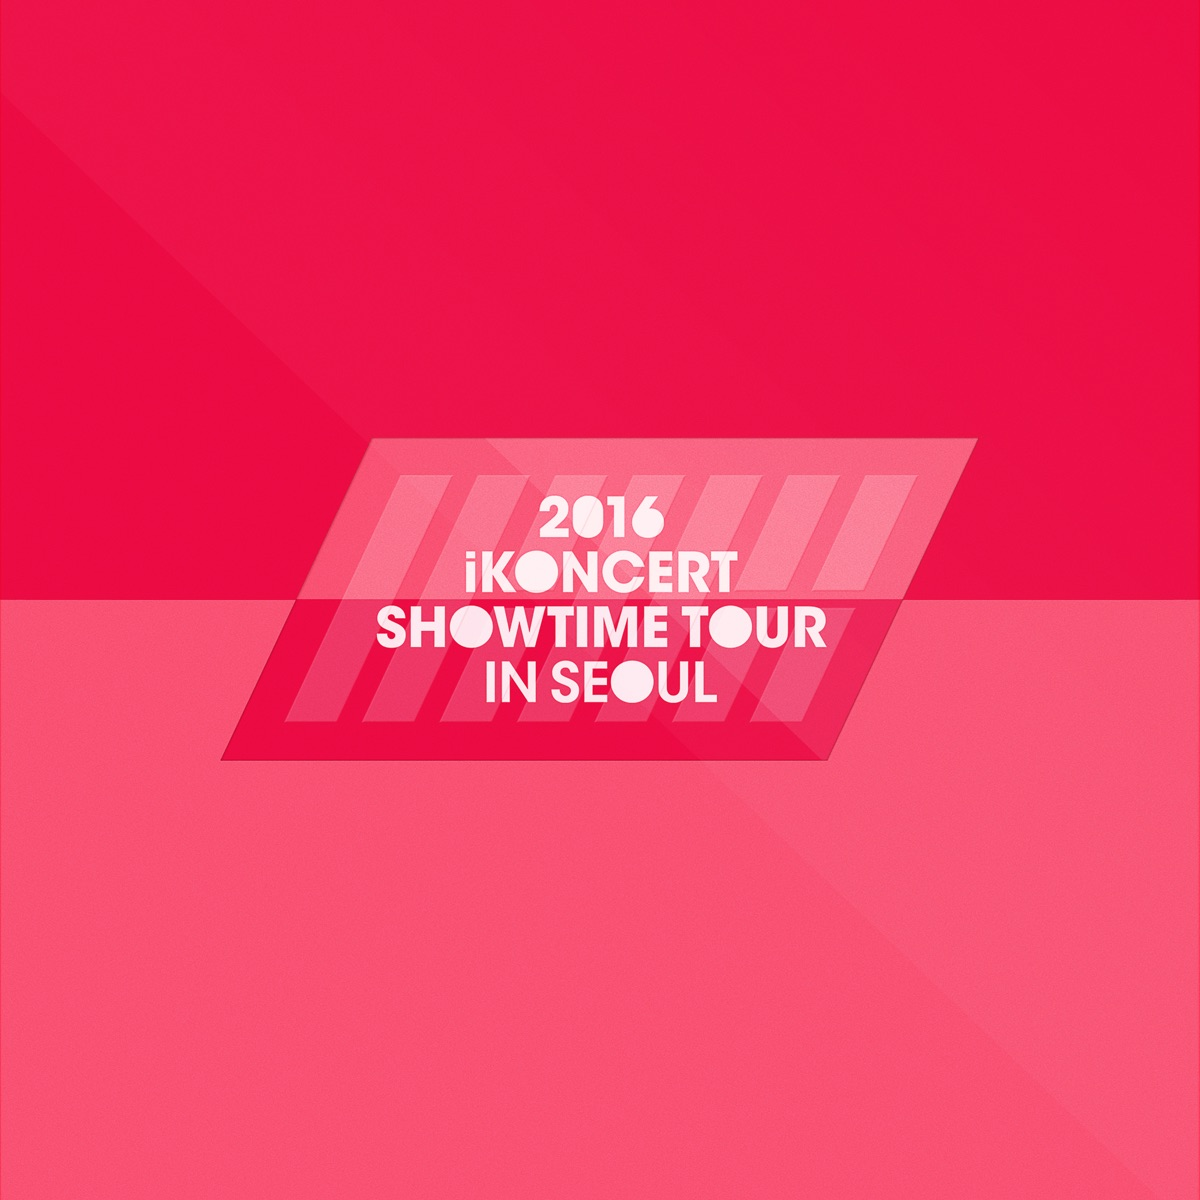 2016 iKON iKONCERT SHOWTIME TOUR IN SEOUL LIVE Album Cover